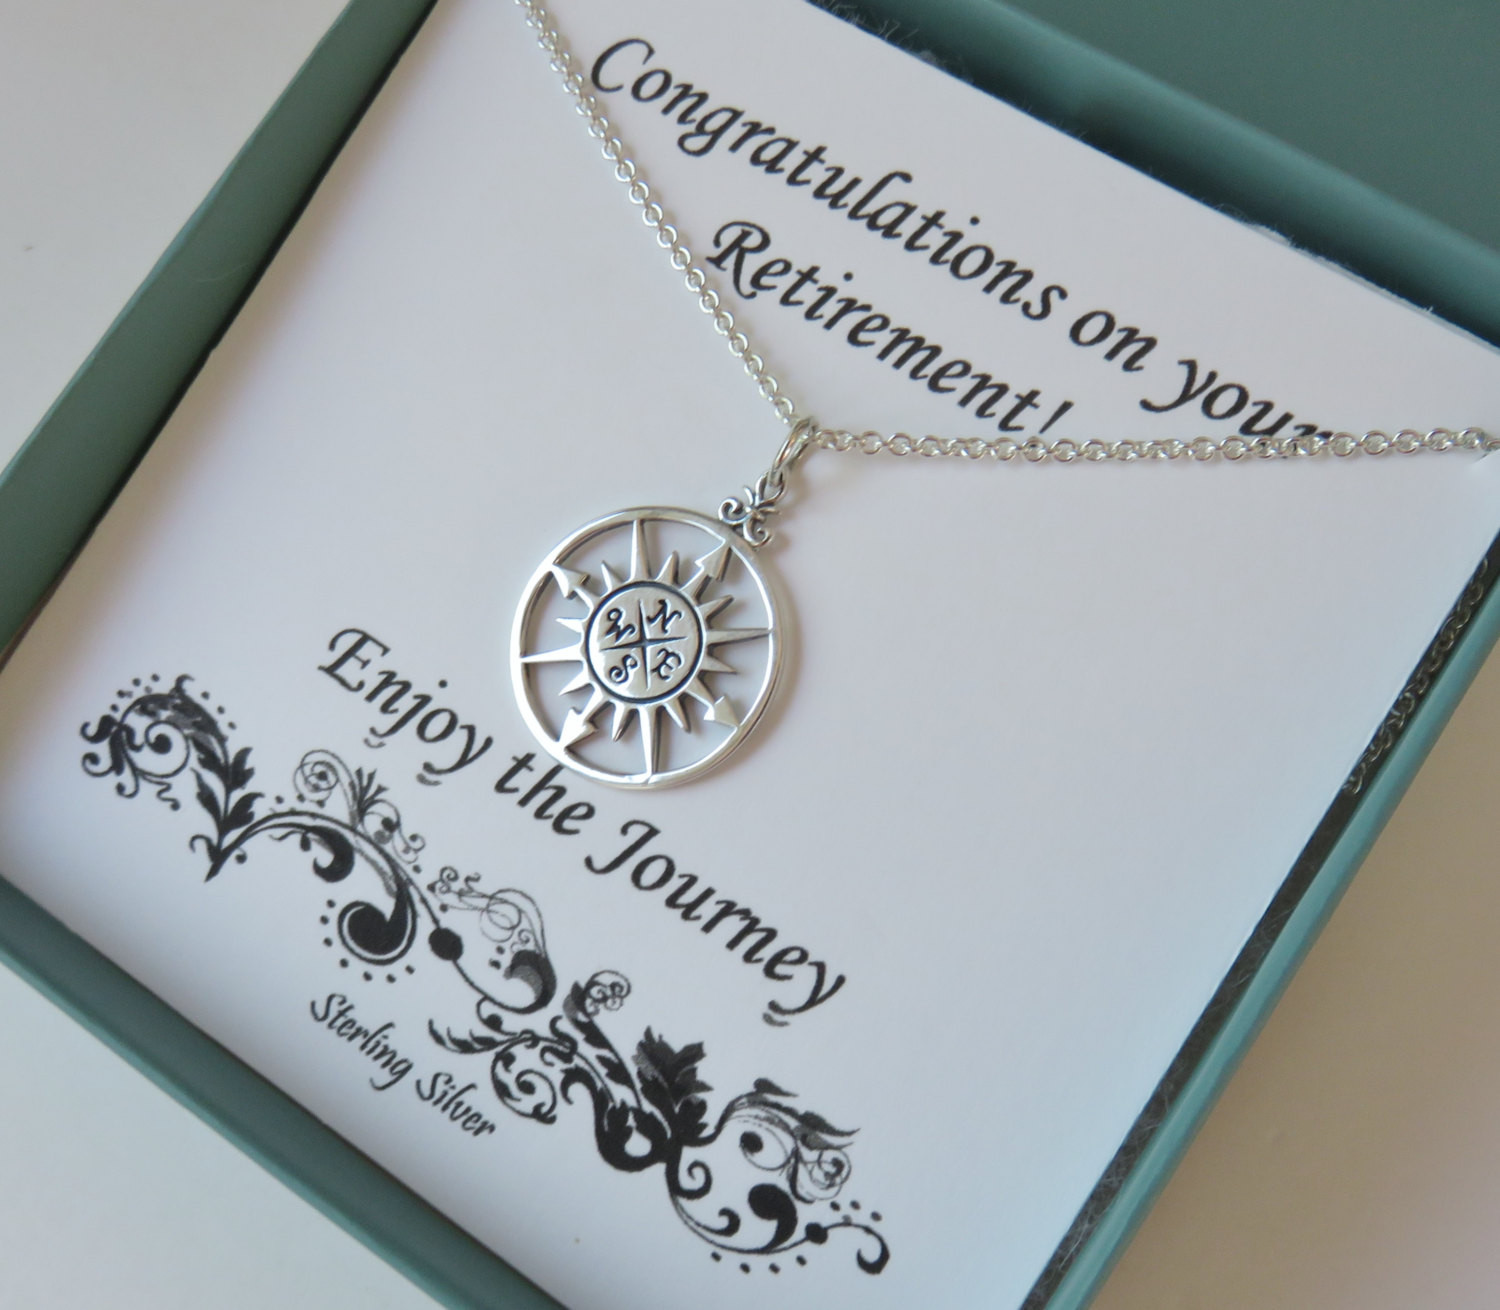 Graduation Jewelry Gift Ideas For Her  Retirement Gifts for Women Graduation Gift for Her Sterling